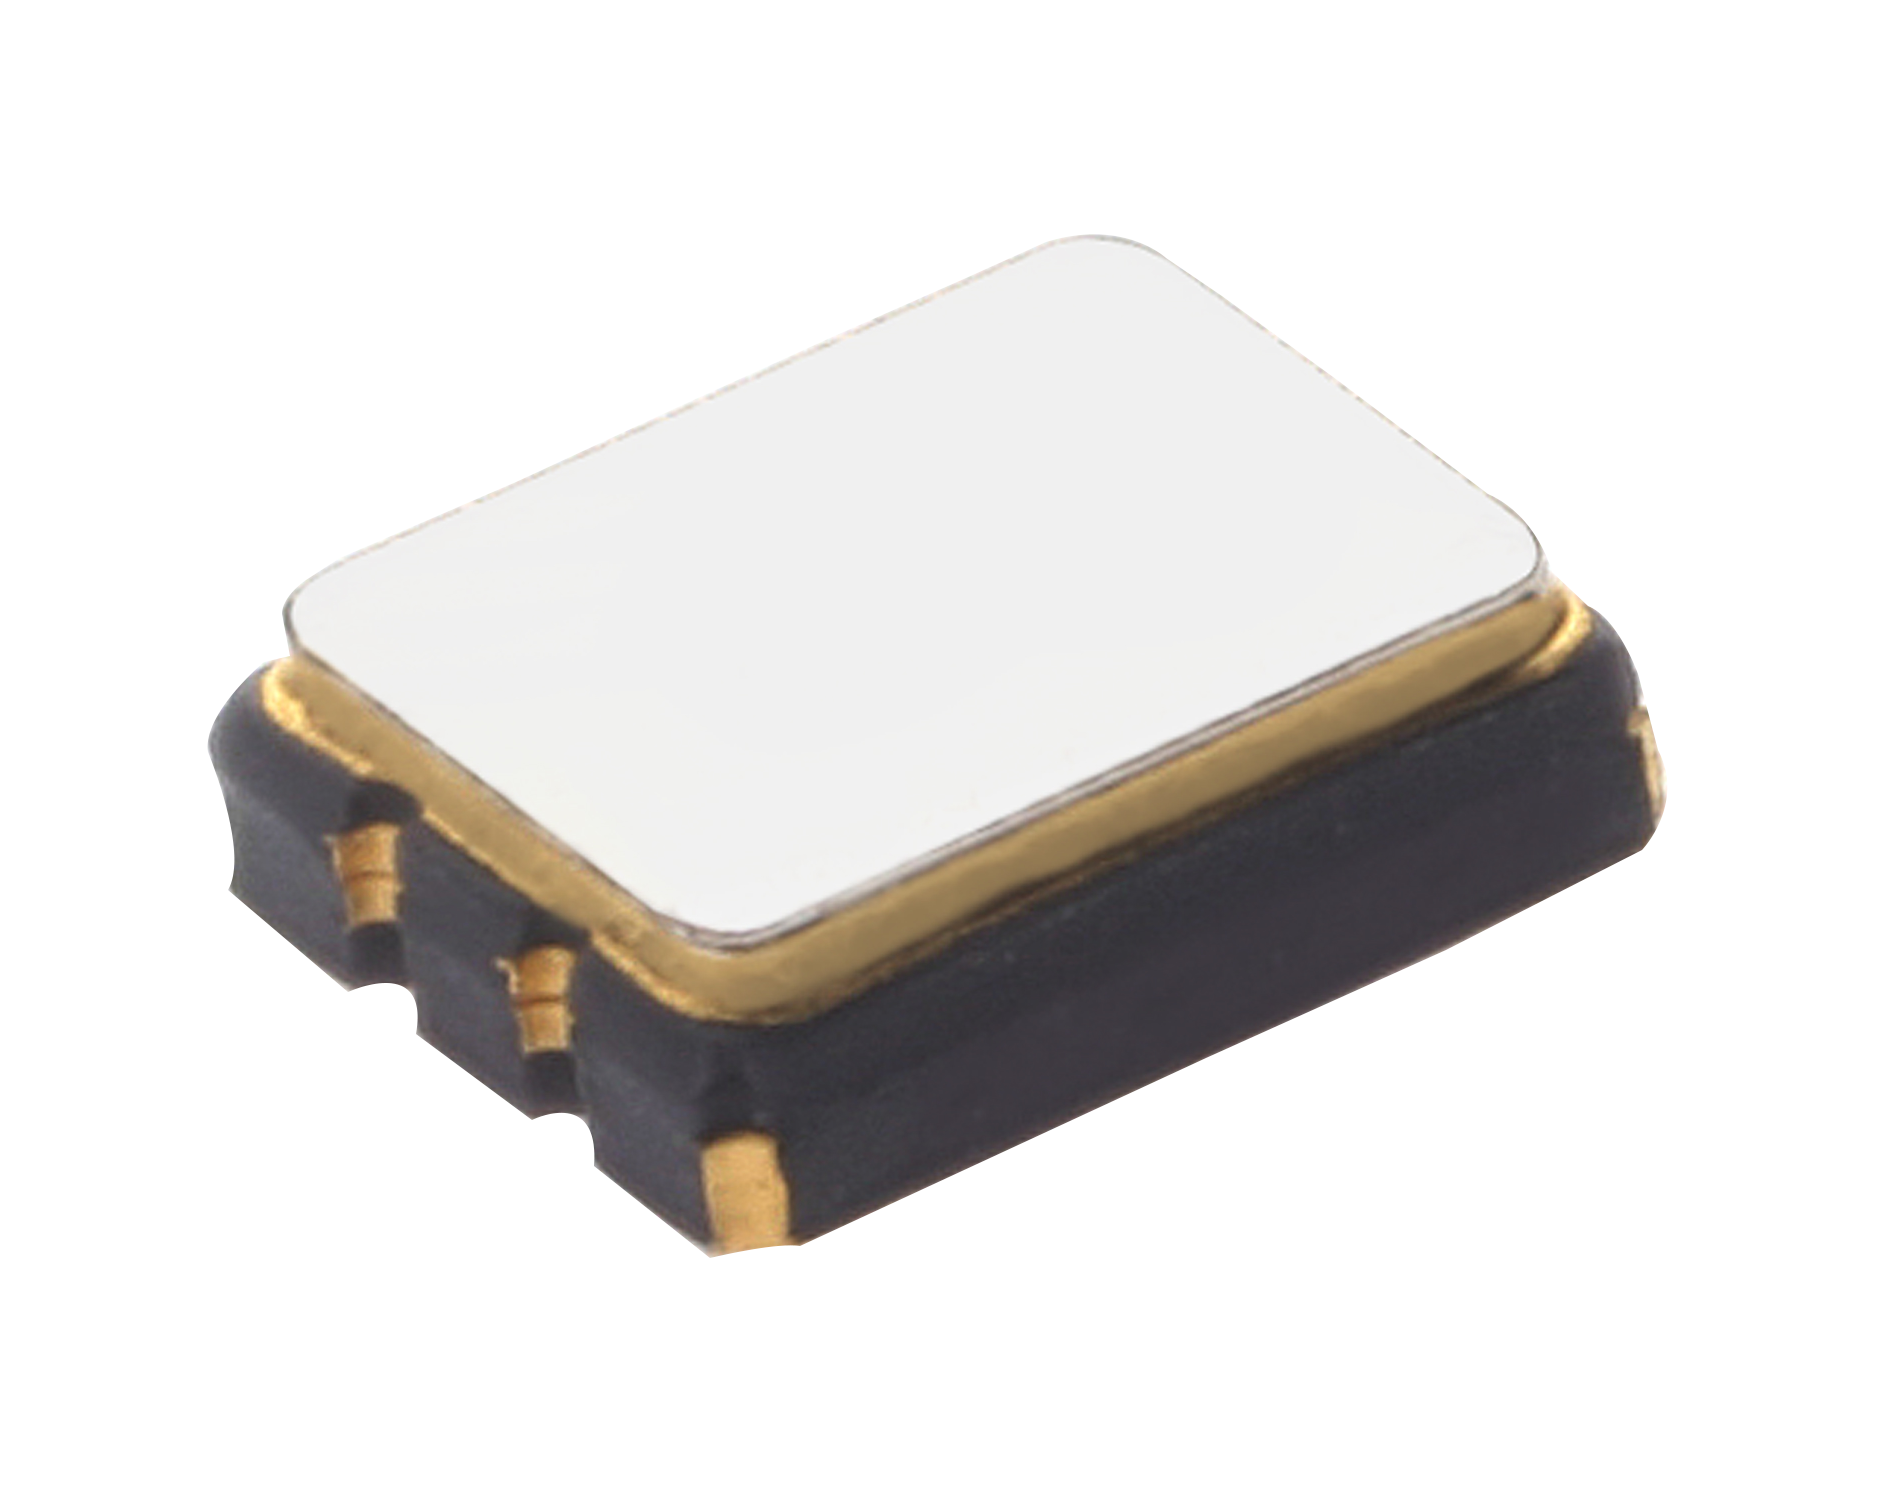 Frequency Control Cts Corporation Crystal Oscillator Using Ttl We Have The Right Oscillators To Help Our Team Will You Select Clock In Packages As Small 25mm20mm